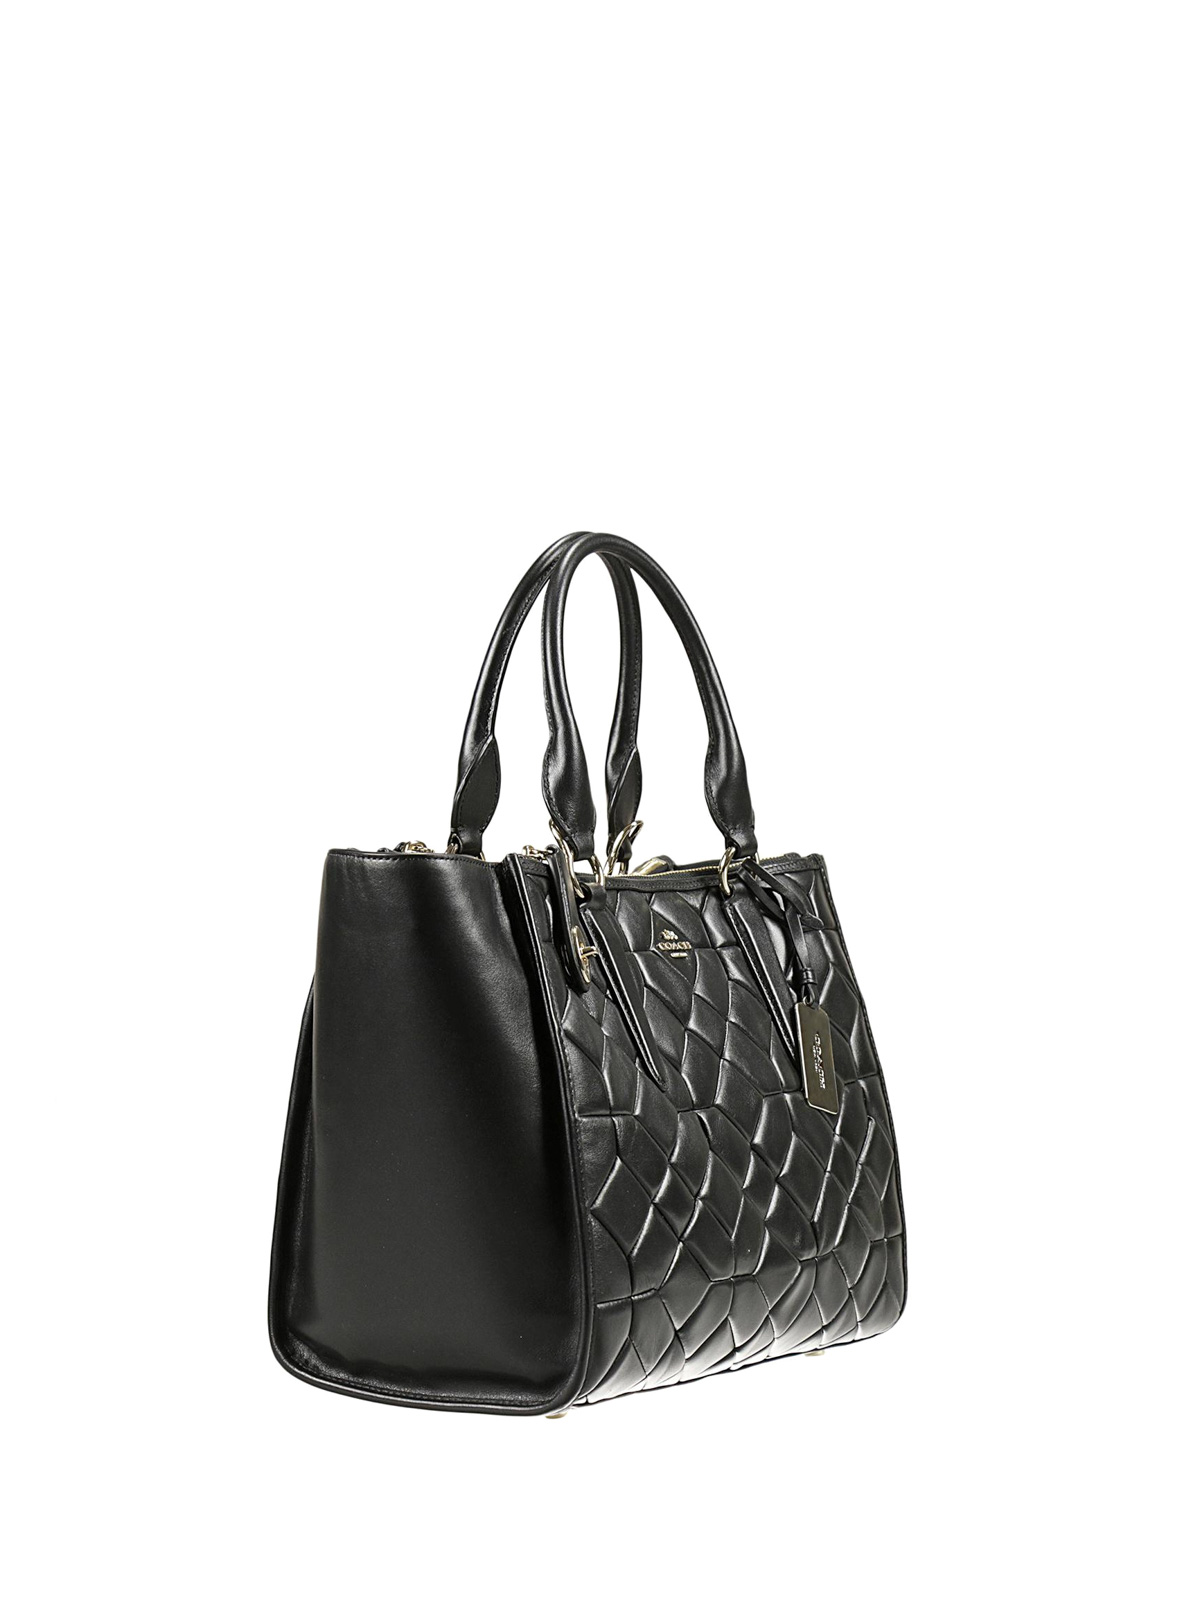 608c94fc6c Coach - Crosby Carryall quilted leather bag - totes bags - 37486 BLACK